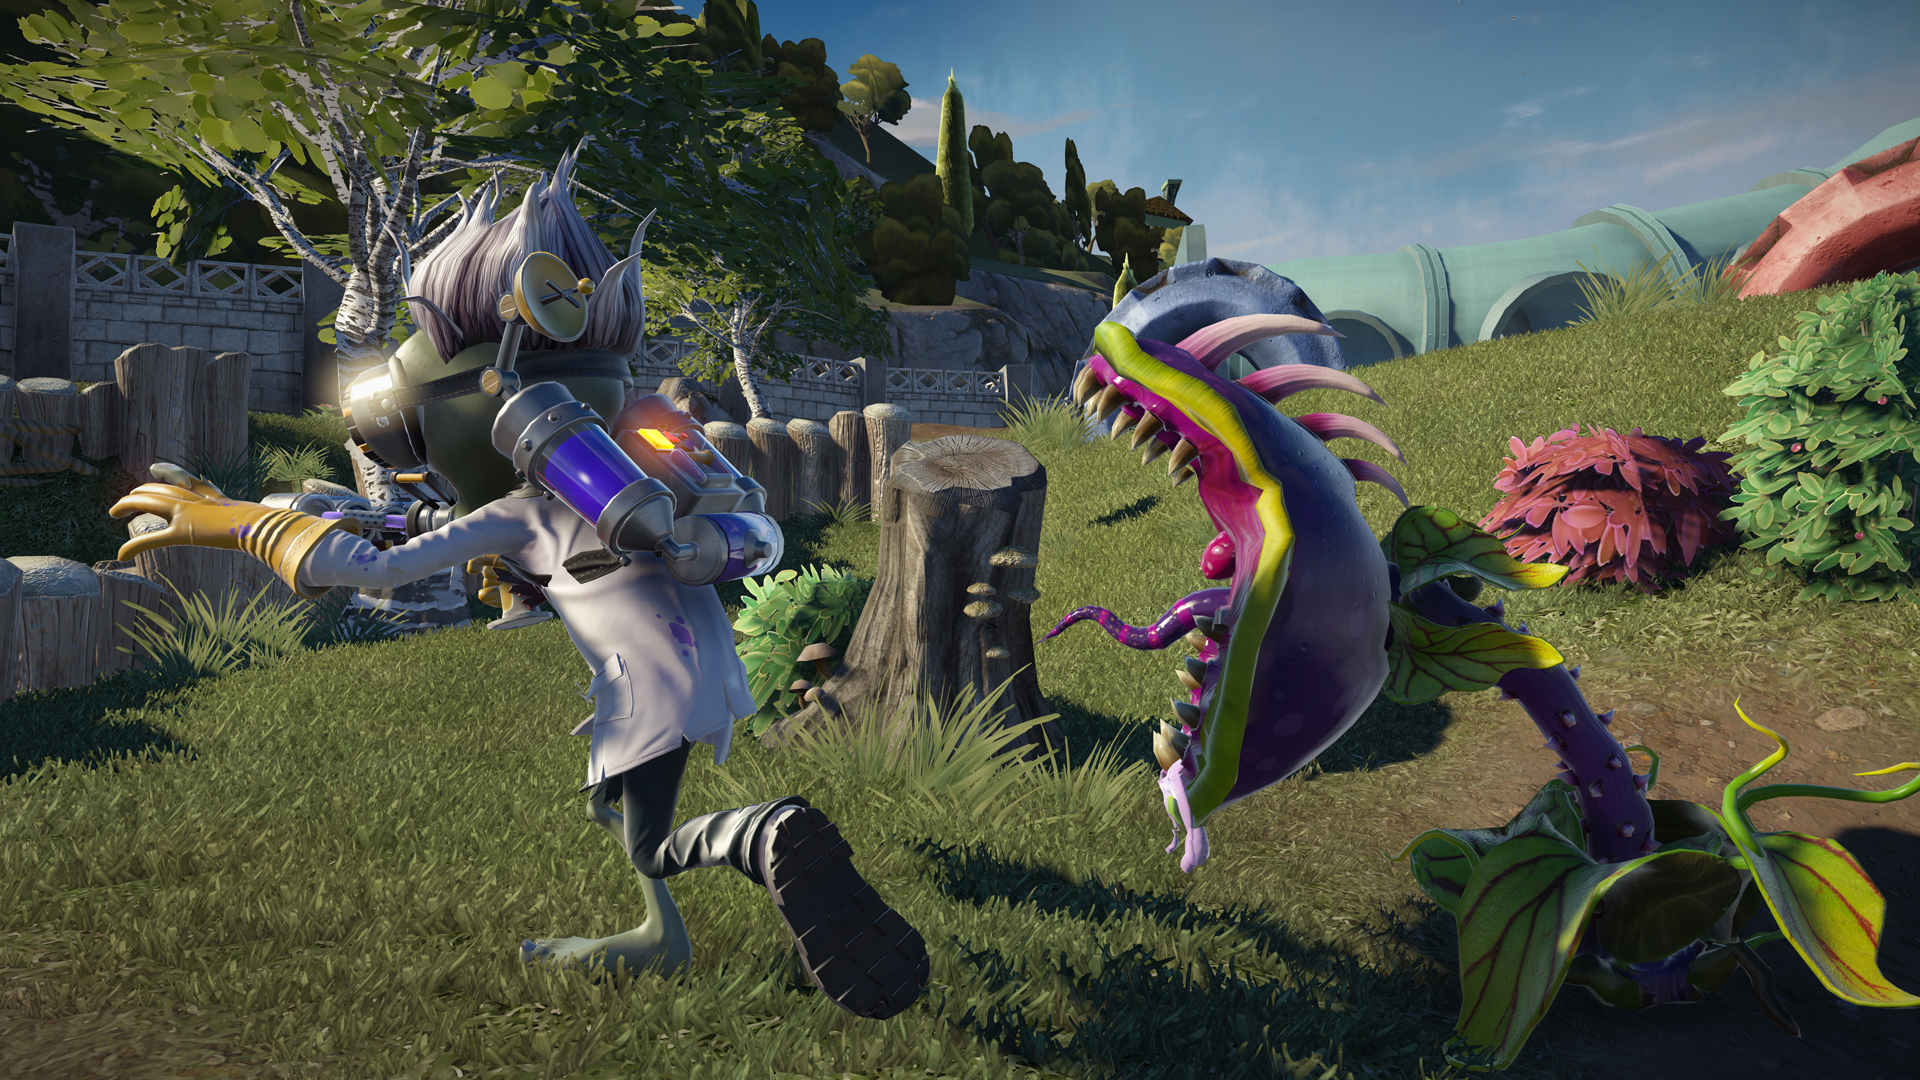 Plants Vs Zombies Garden Warfare Coming To PS3 And PS4